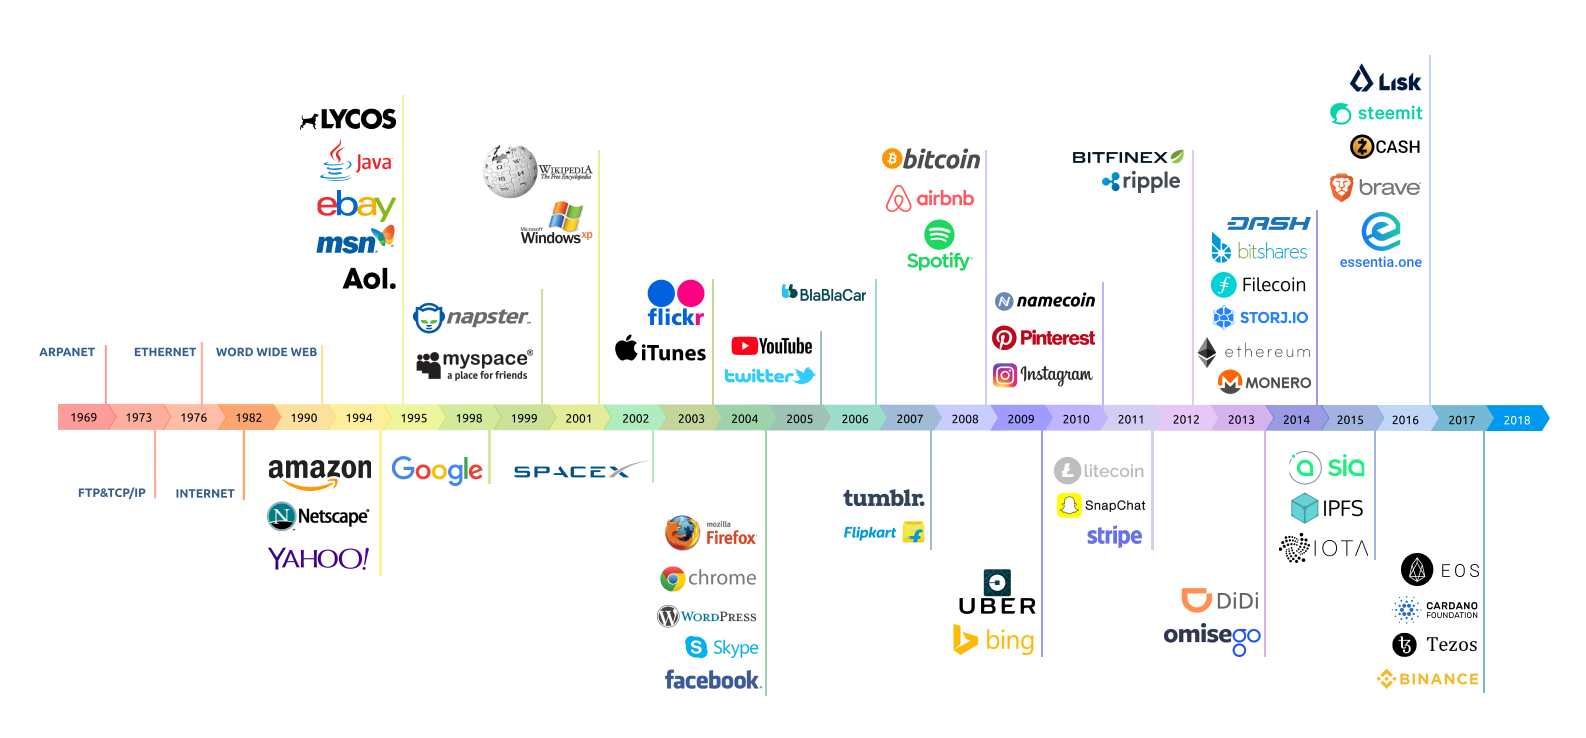 Cryptocurrency Investment Strategy: Timeline over when different companies and cryptocurrencies were founded